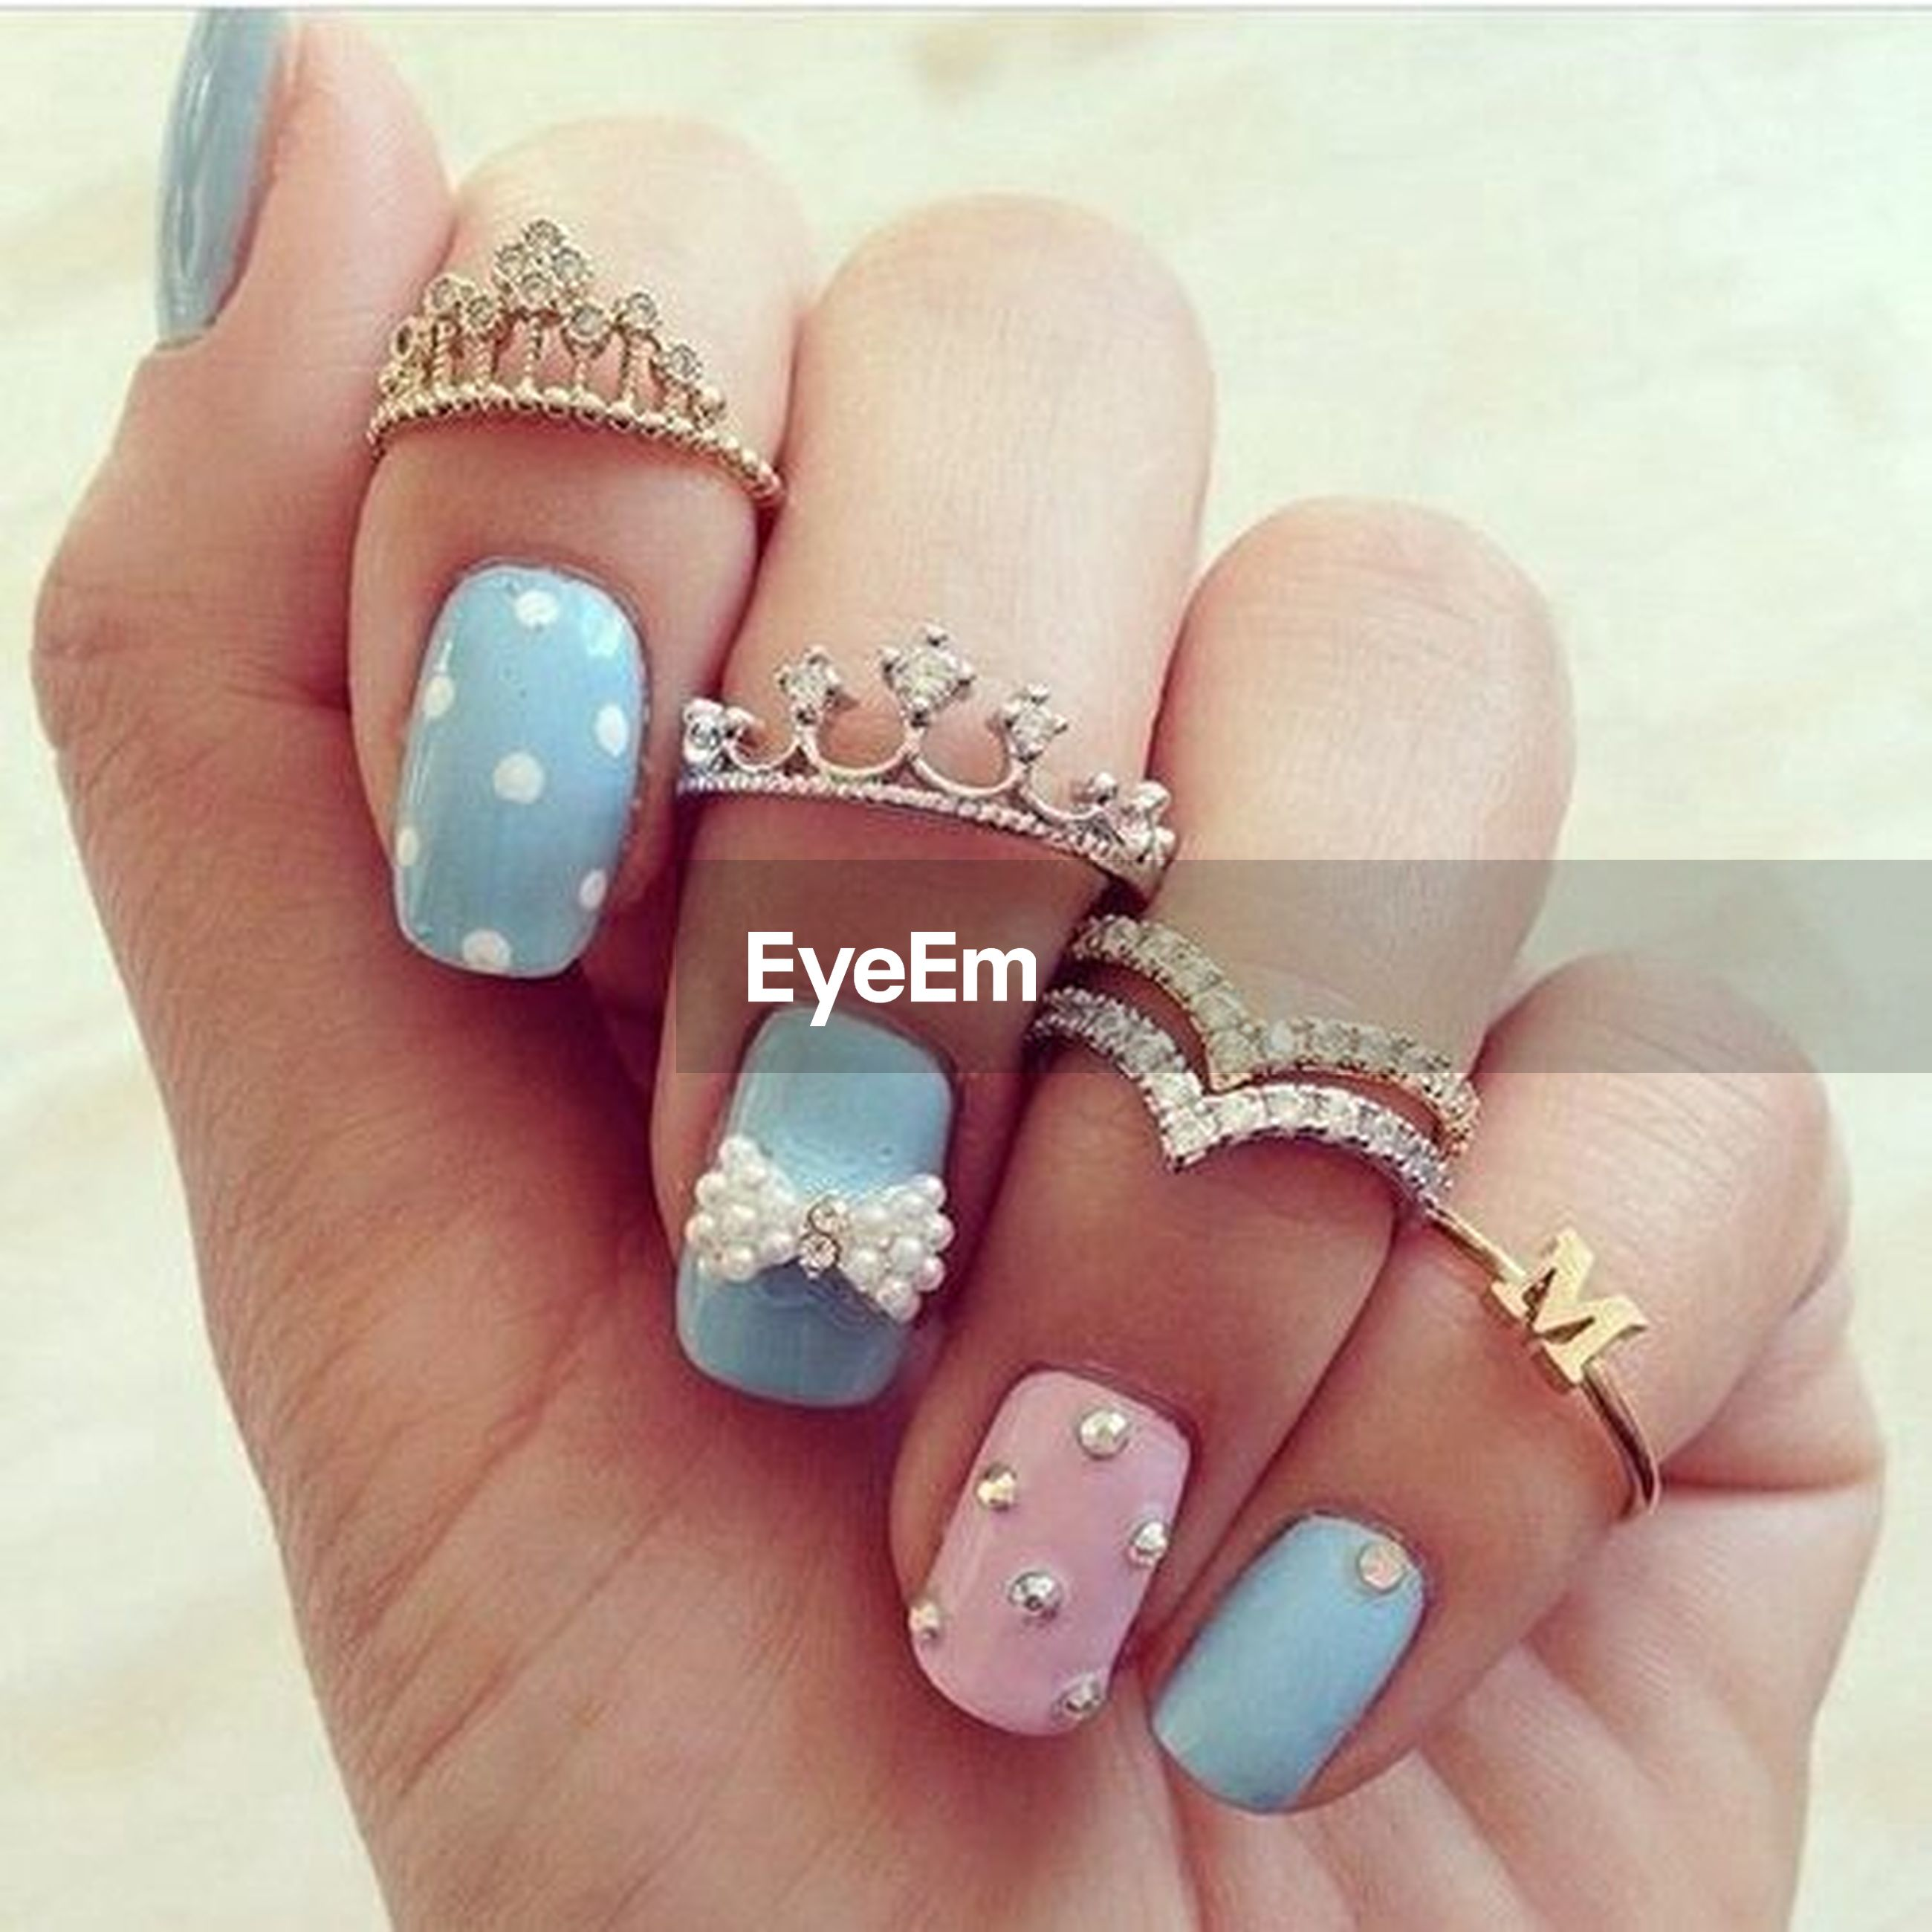 person, part of, close-up, personal perspective, indoors, human finger, fashion, jewelry, high angle view, holding, lifestyles, nail polish, leisure activity, ring, bracelet, unrecognizable person